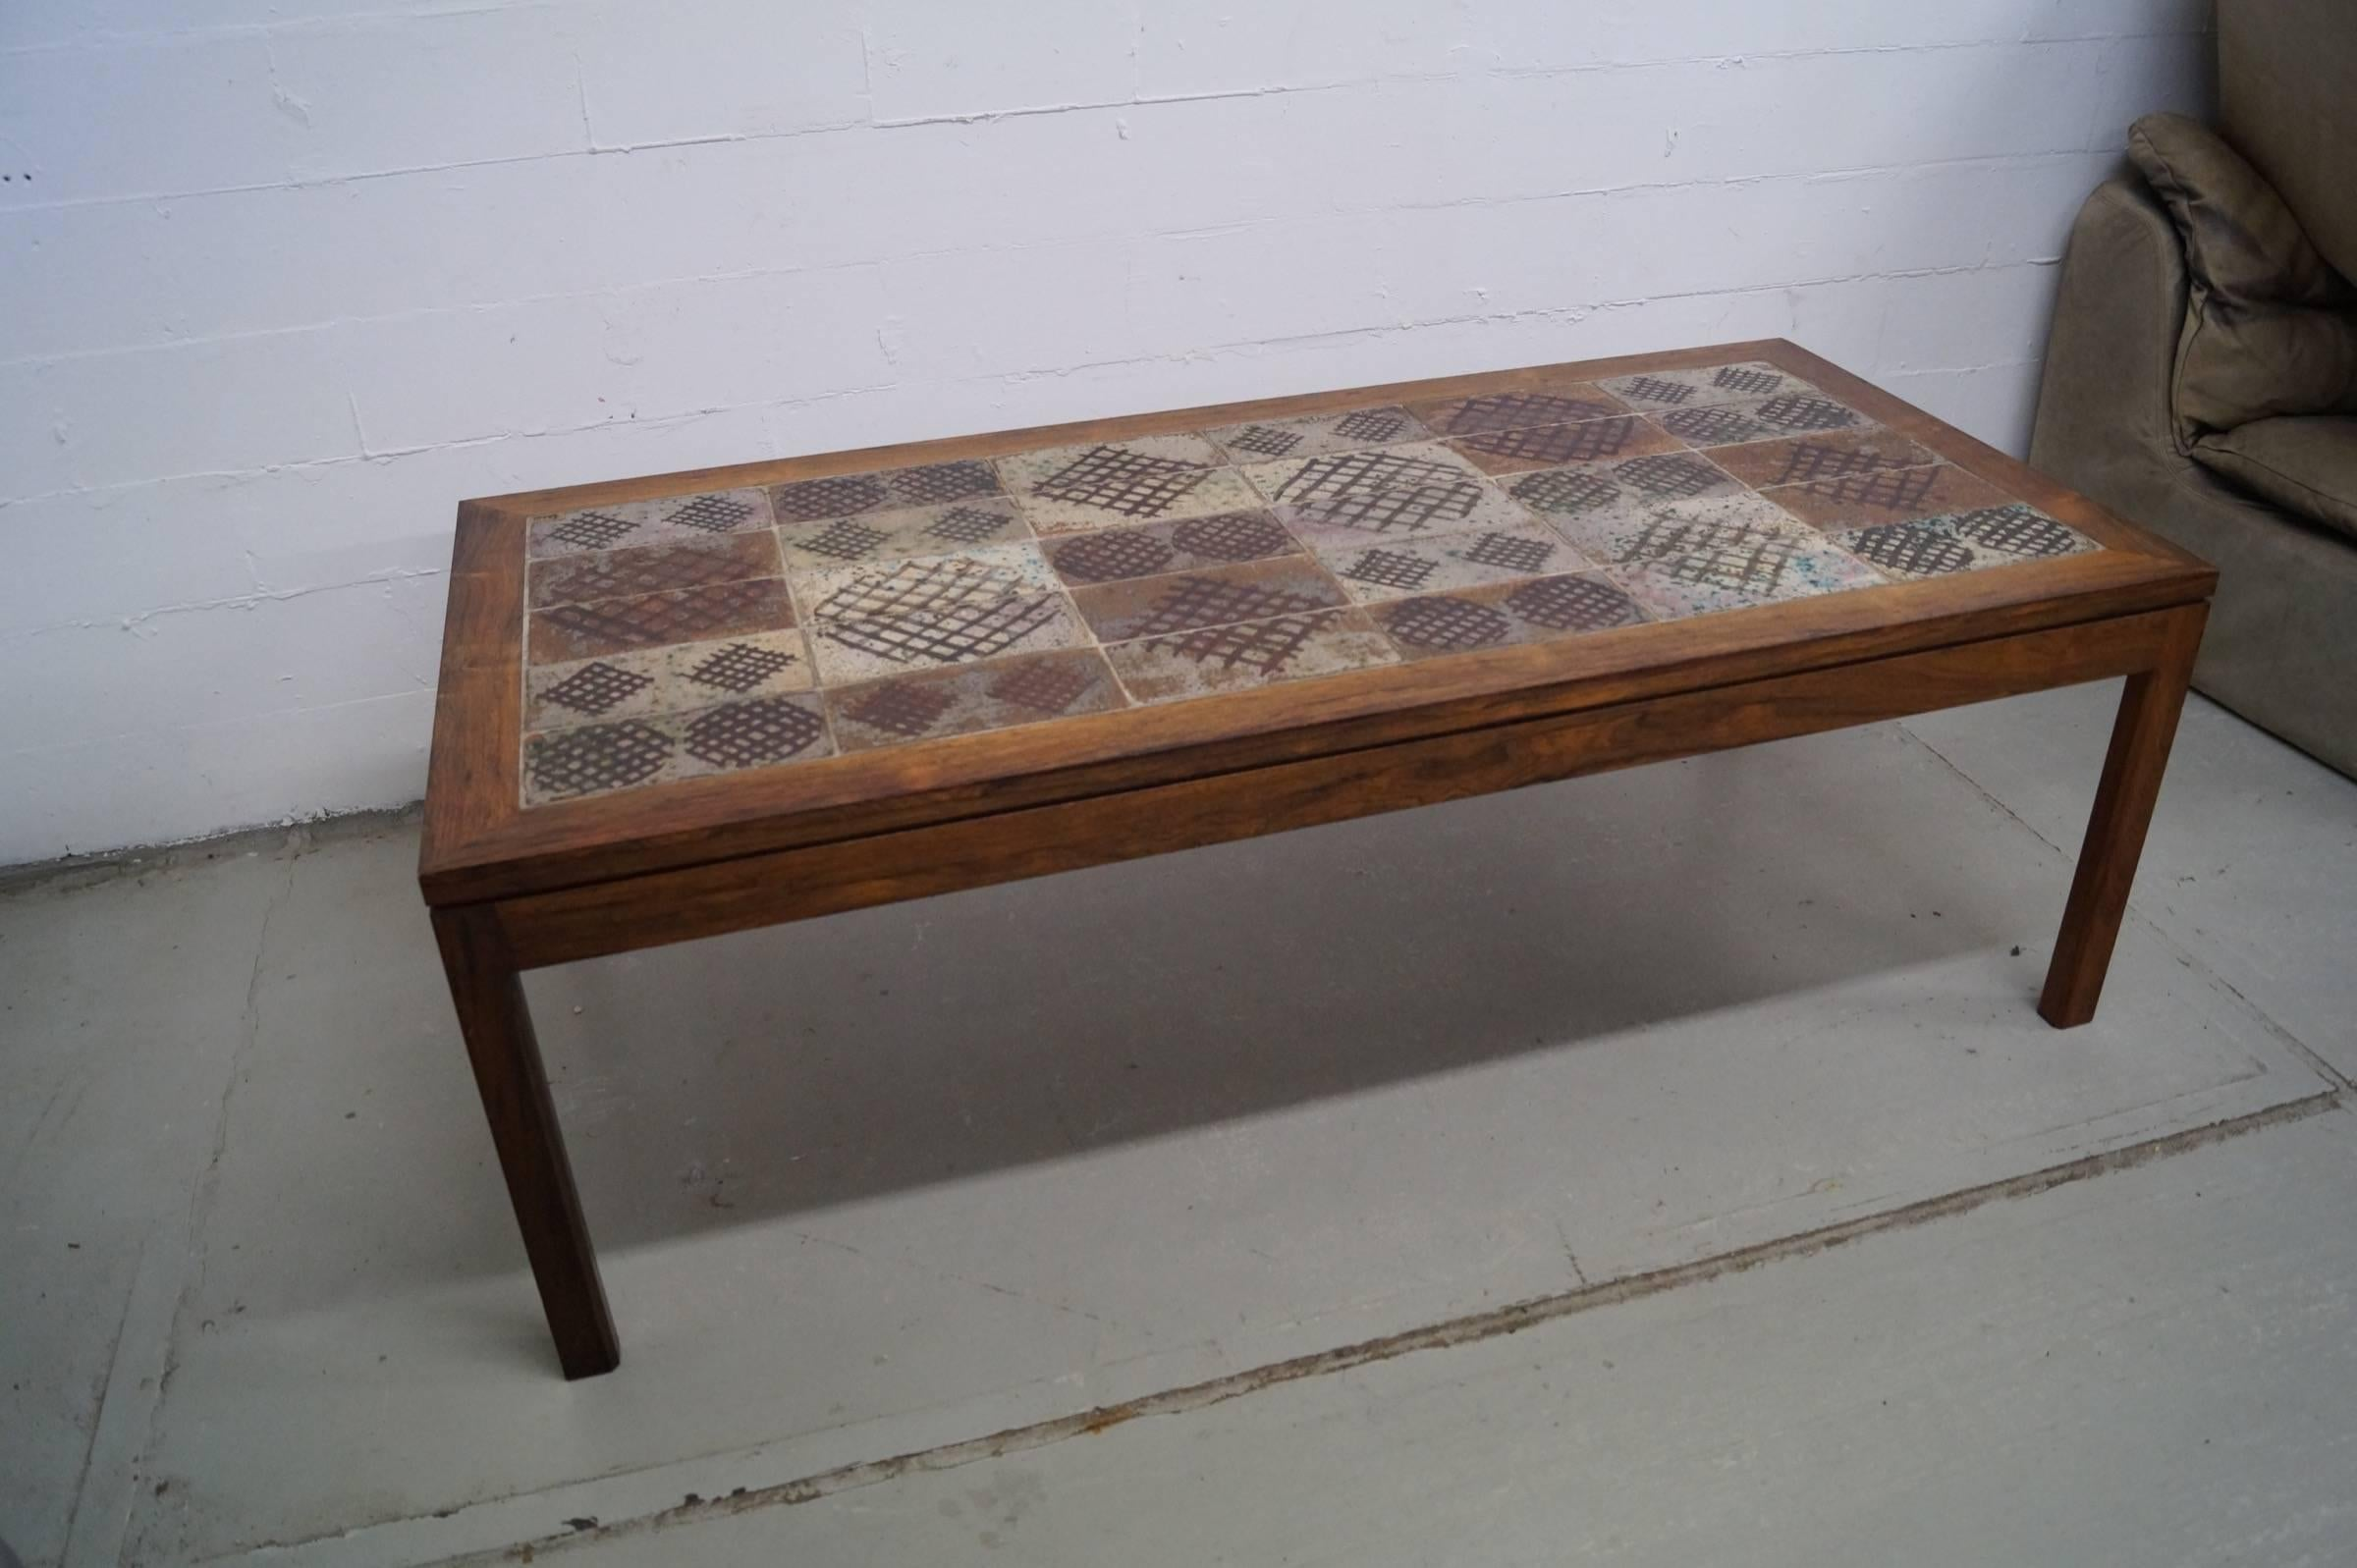 Rosewood Coffee Table Fine Vintage Tile Topped Table, Signed By Tue  Poulsen. Measures: